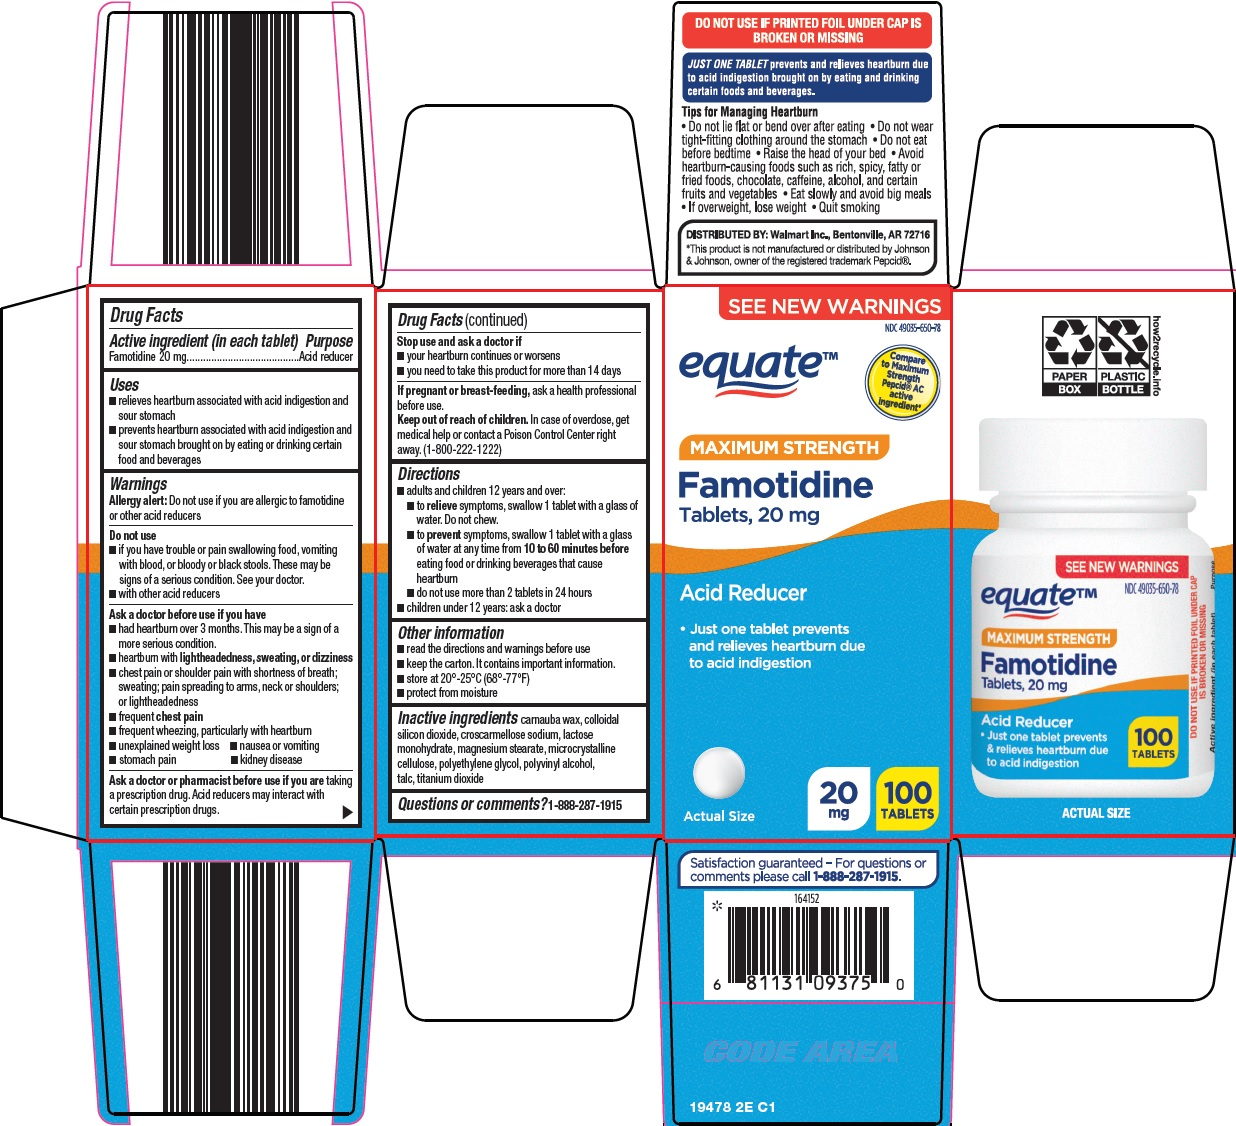 Famotidine Tablets, 20 mg Carton